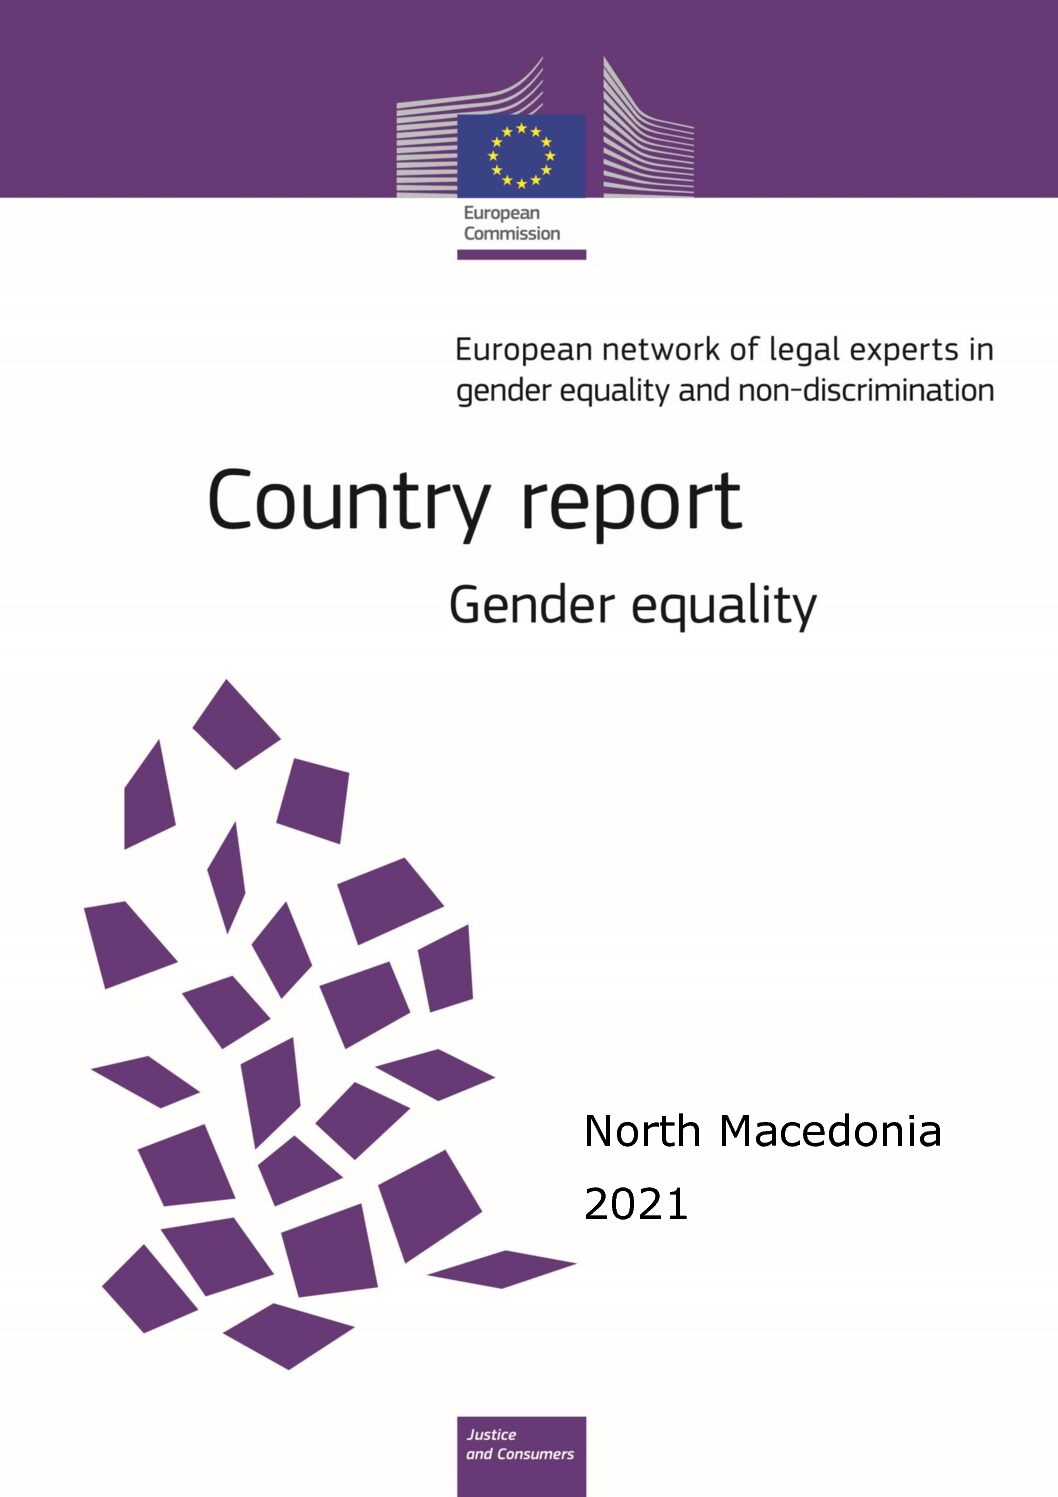 North Macedonia – Country report gender equality 2021